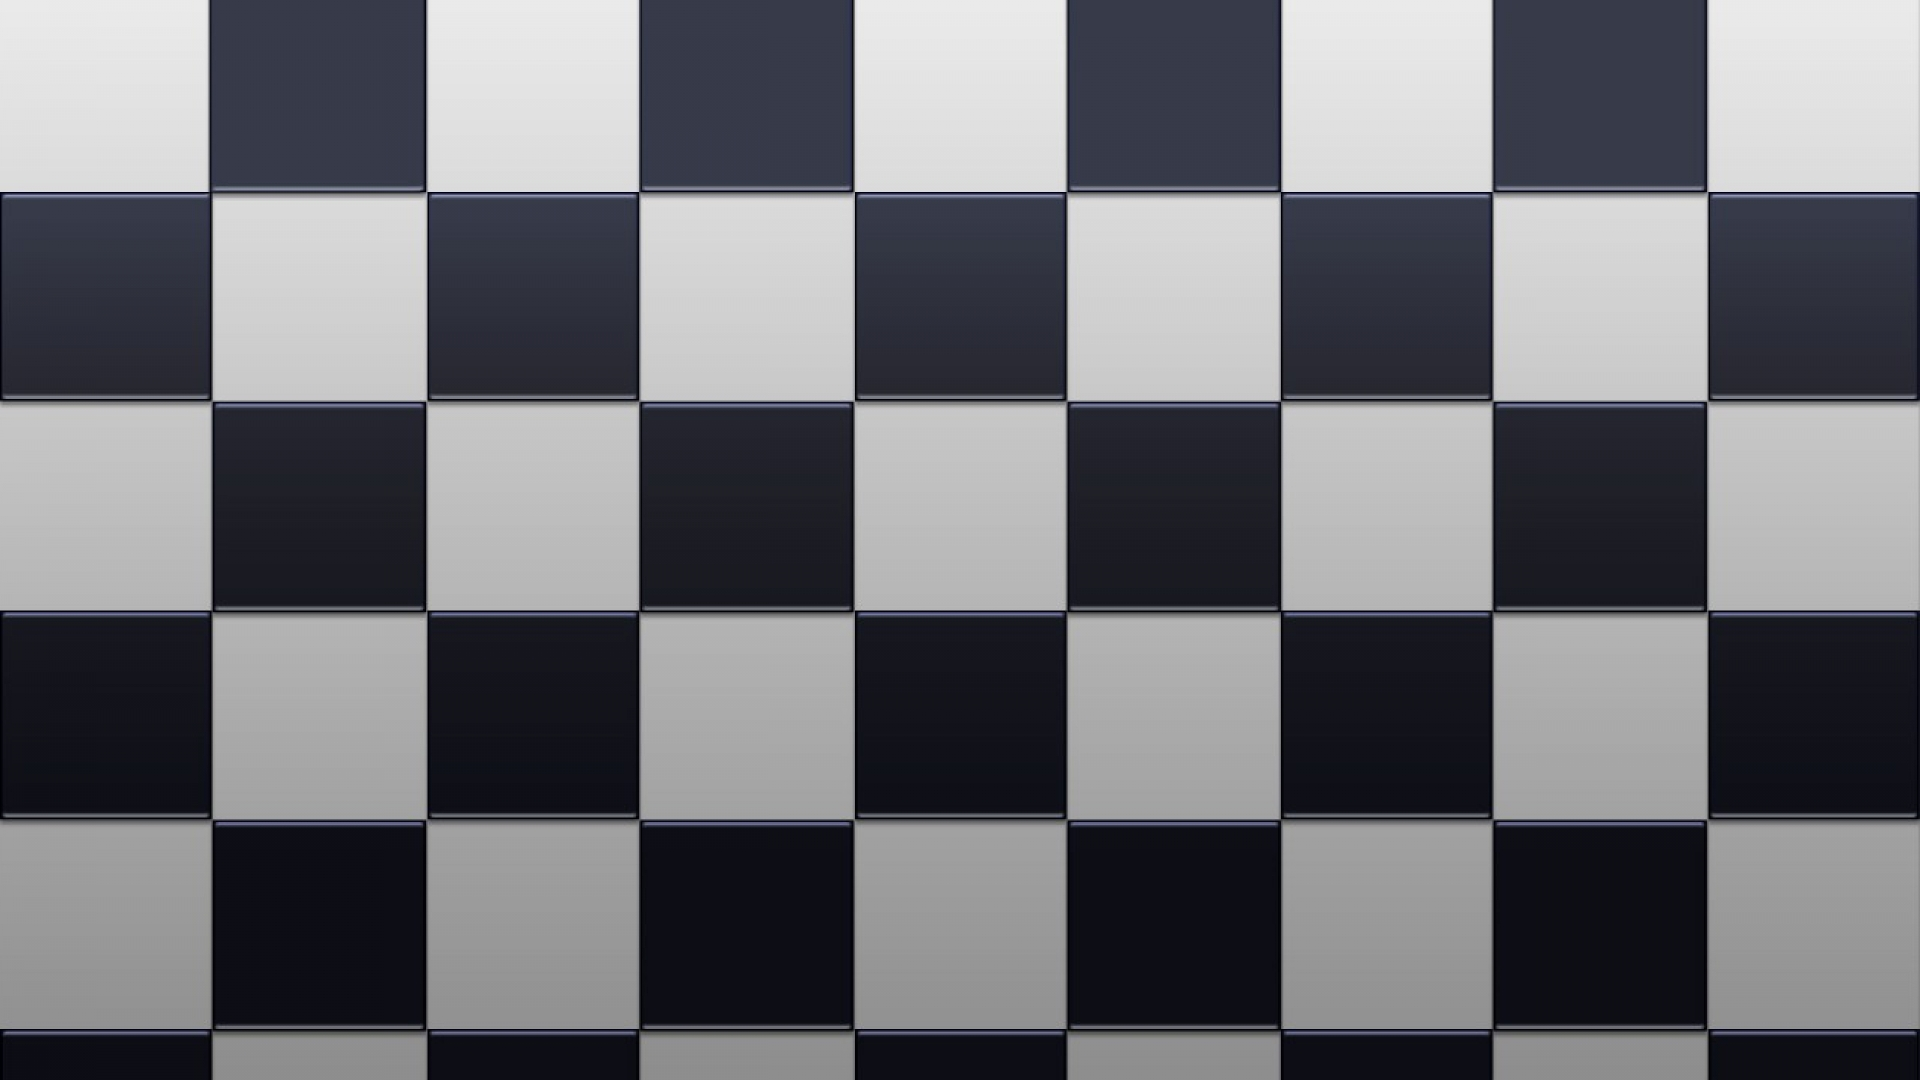 Chess-Board-Wallpaper